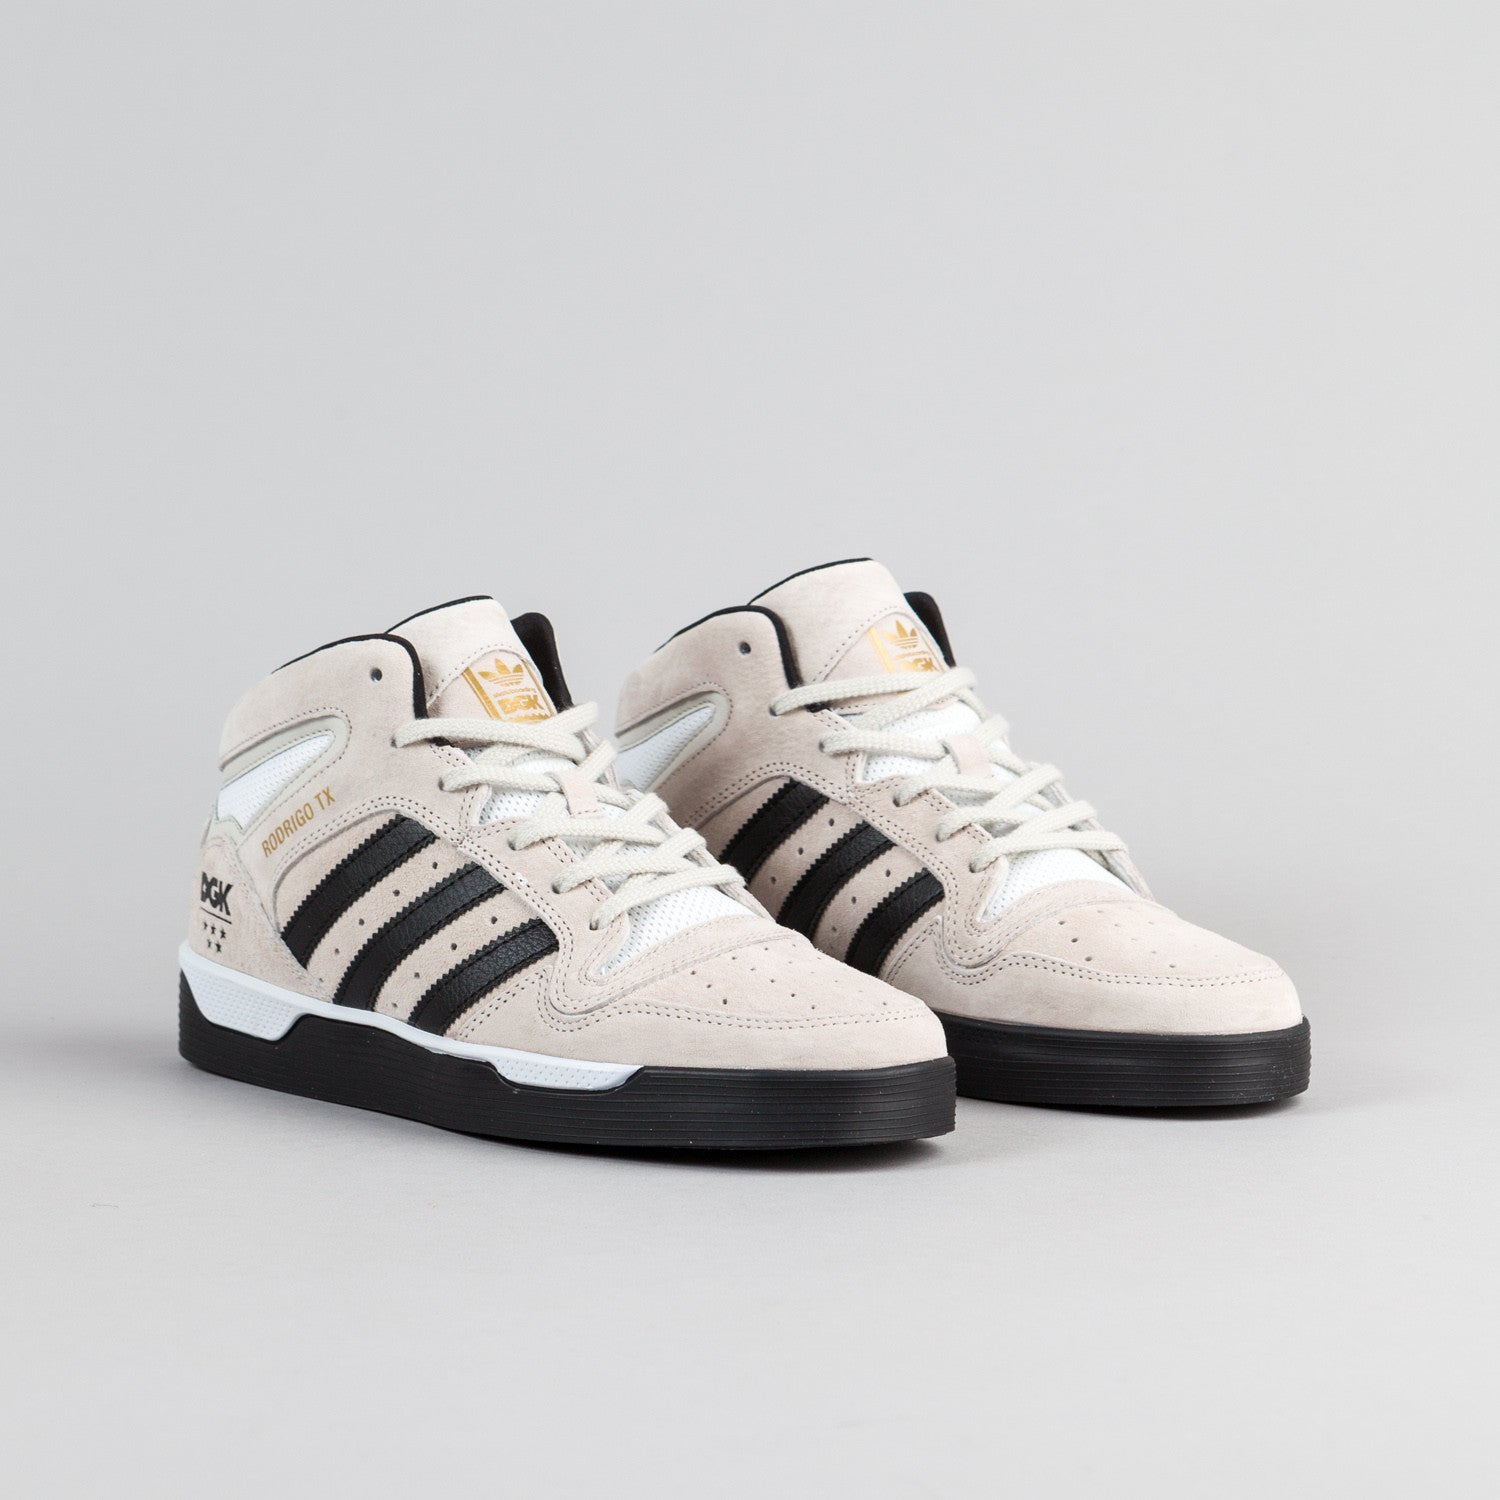 Adidas x DGK Locator Mid Shoes - Mist Stone / Core Black / White